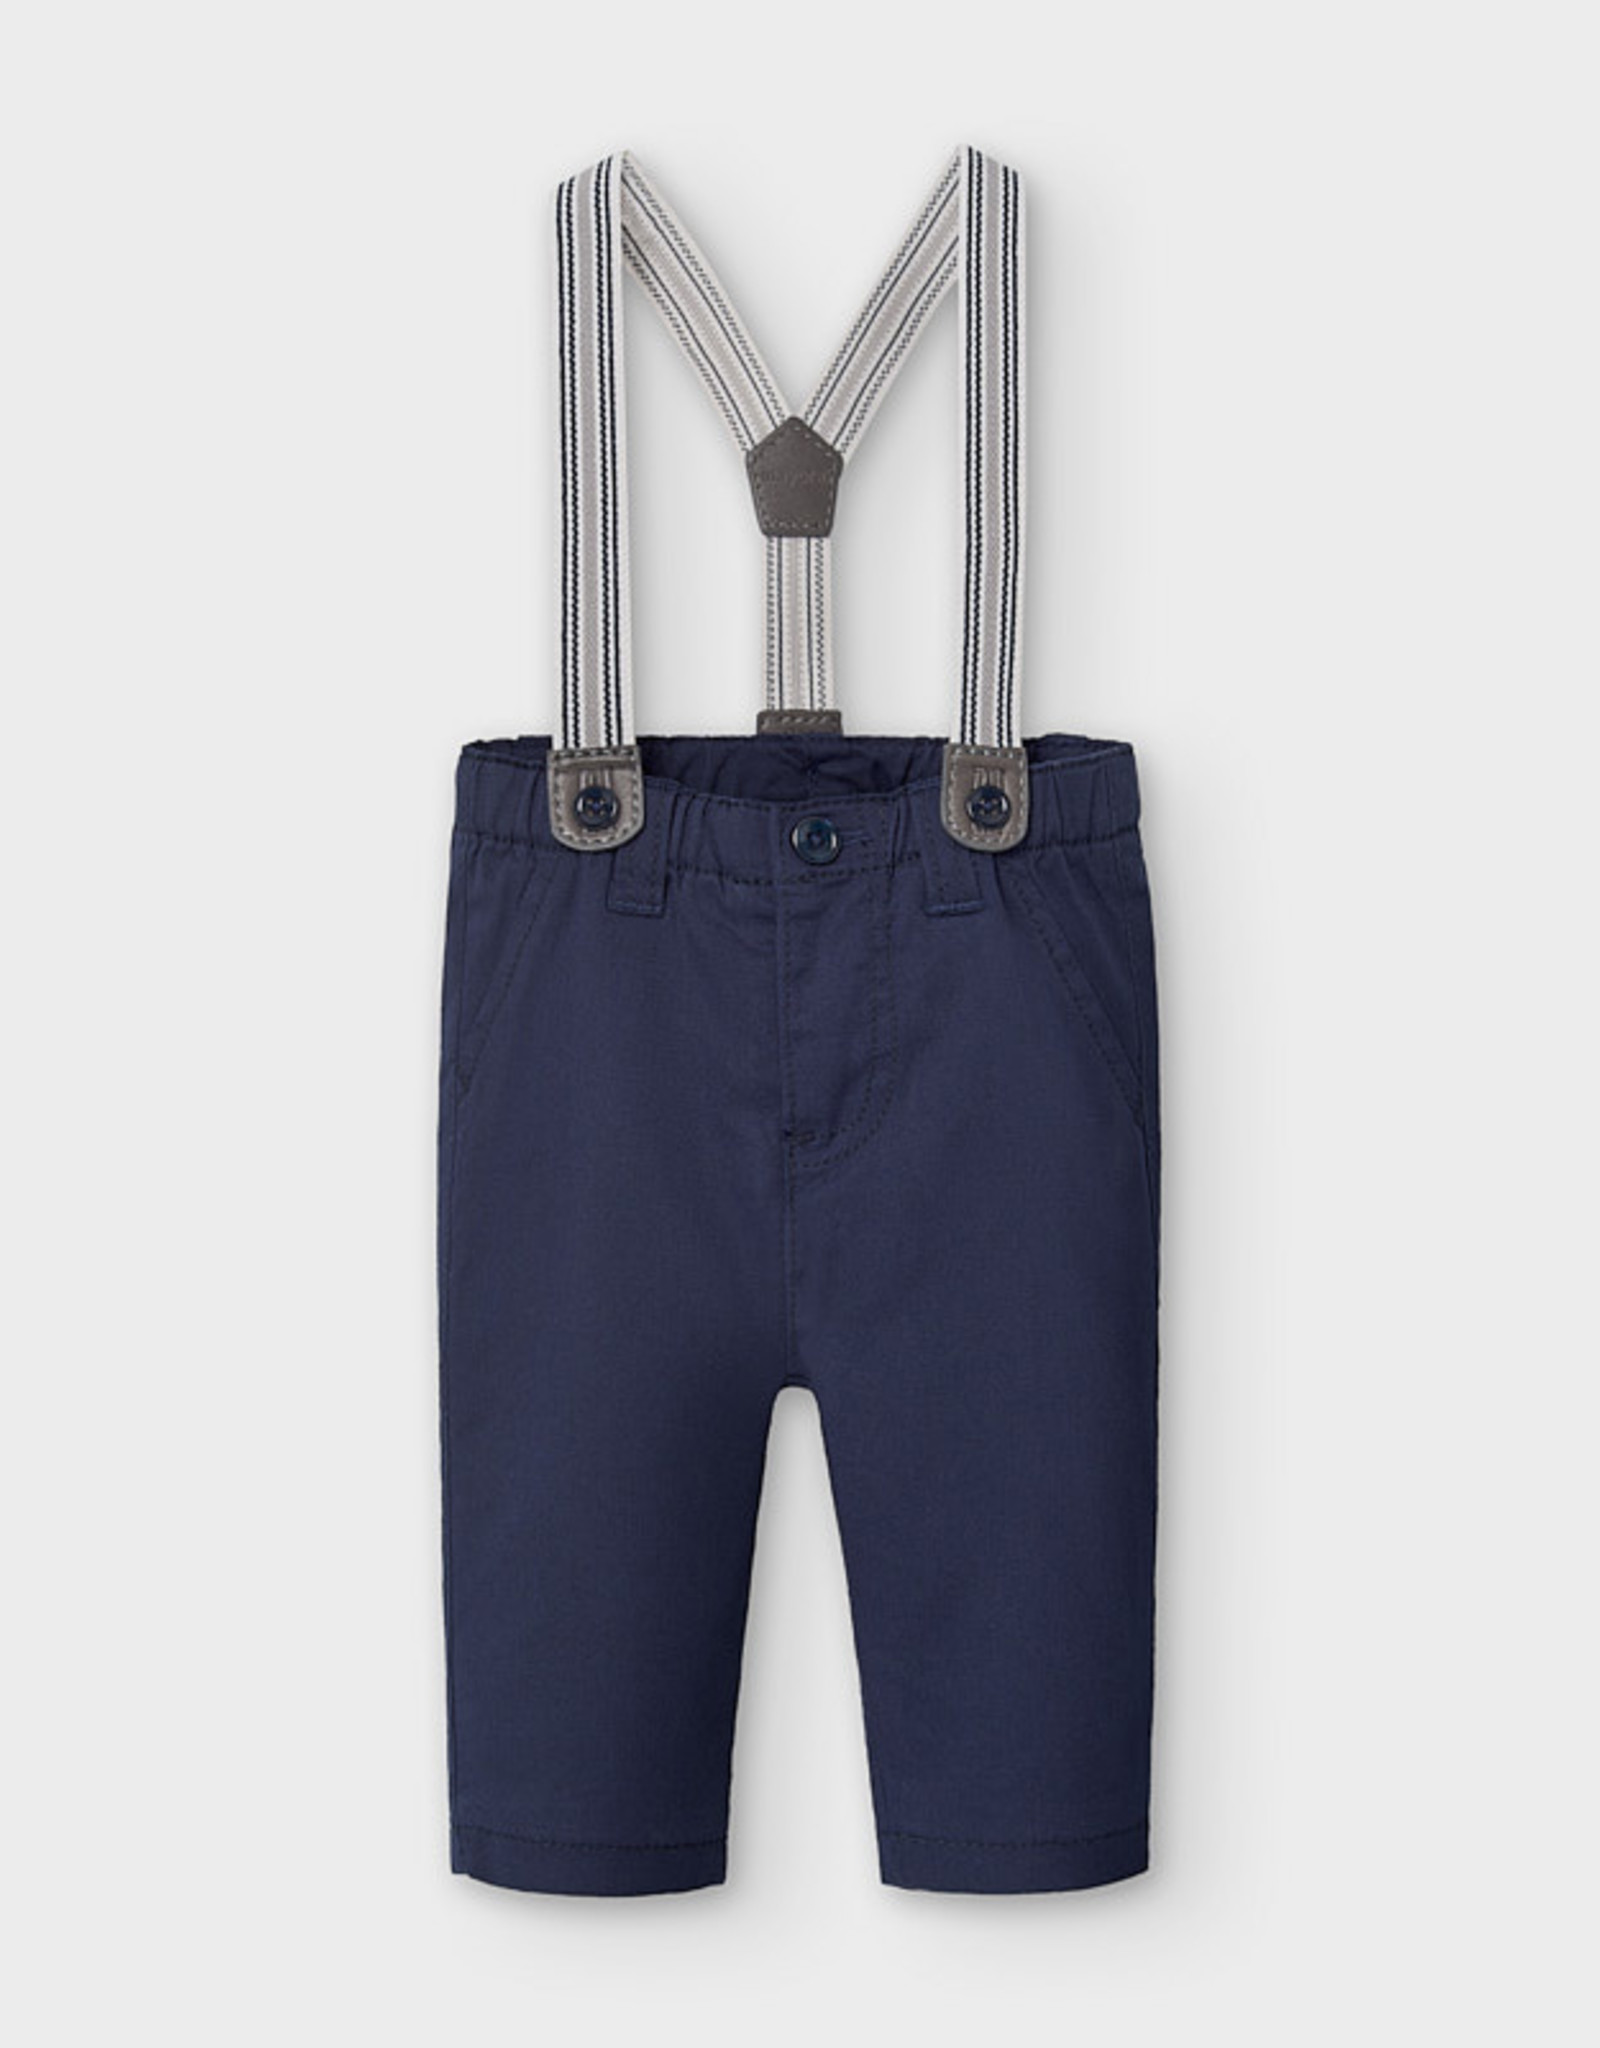 Mayoral FA20 Navy Pants w/Suspenders